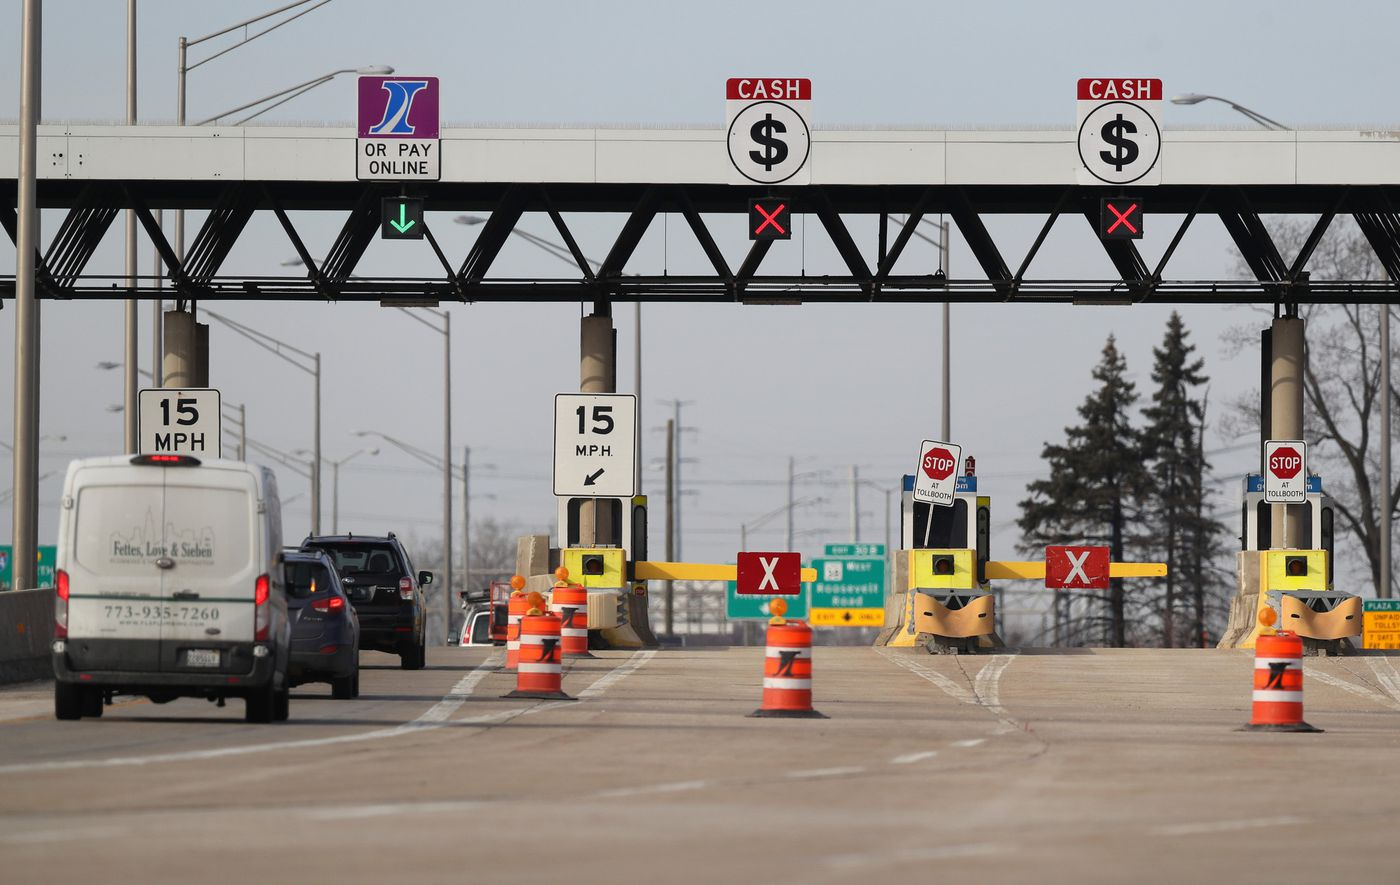 Drivers pass through an I-Pass lane near closed cash lanes at the Cermak Road toll plaza on I-294, Feb. 26, 2021.